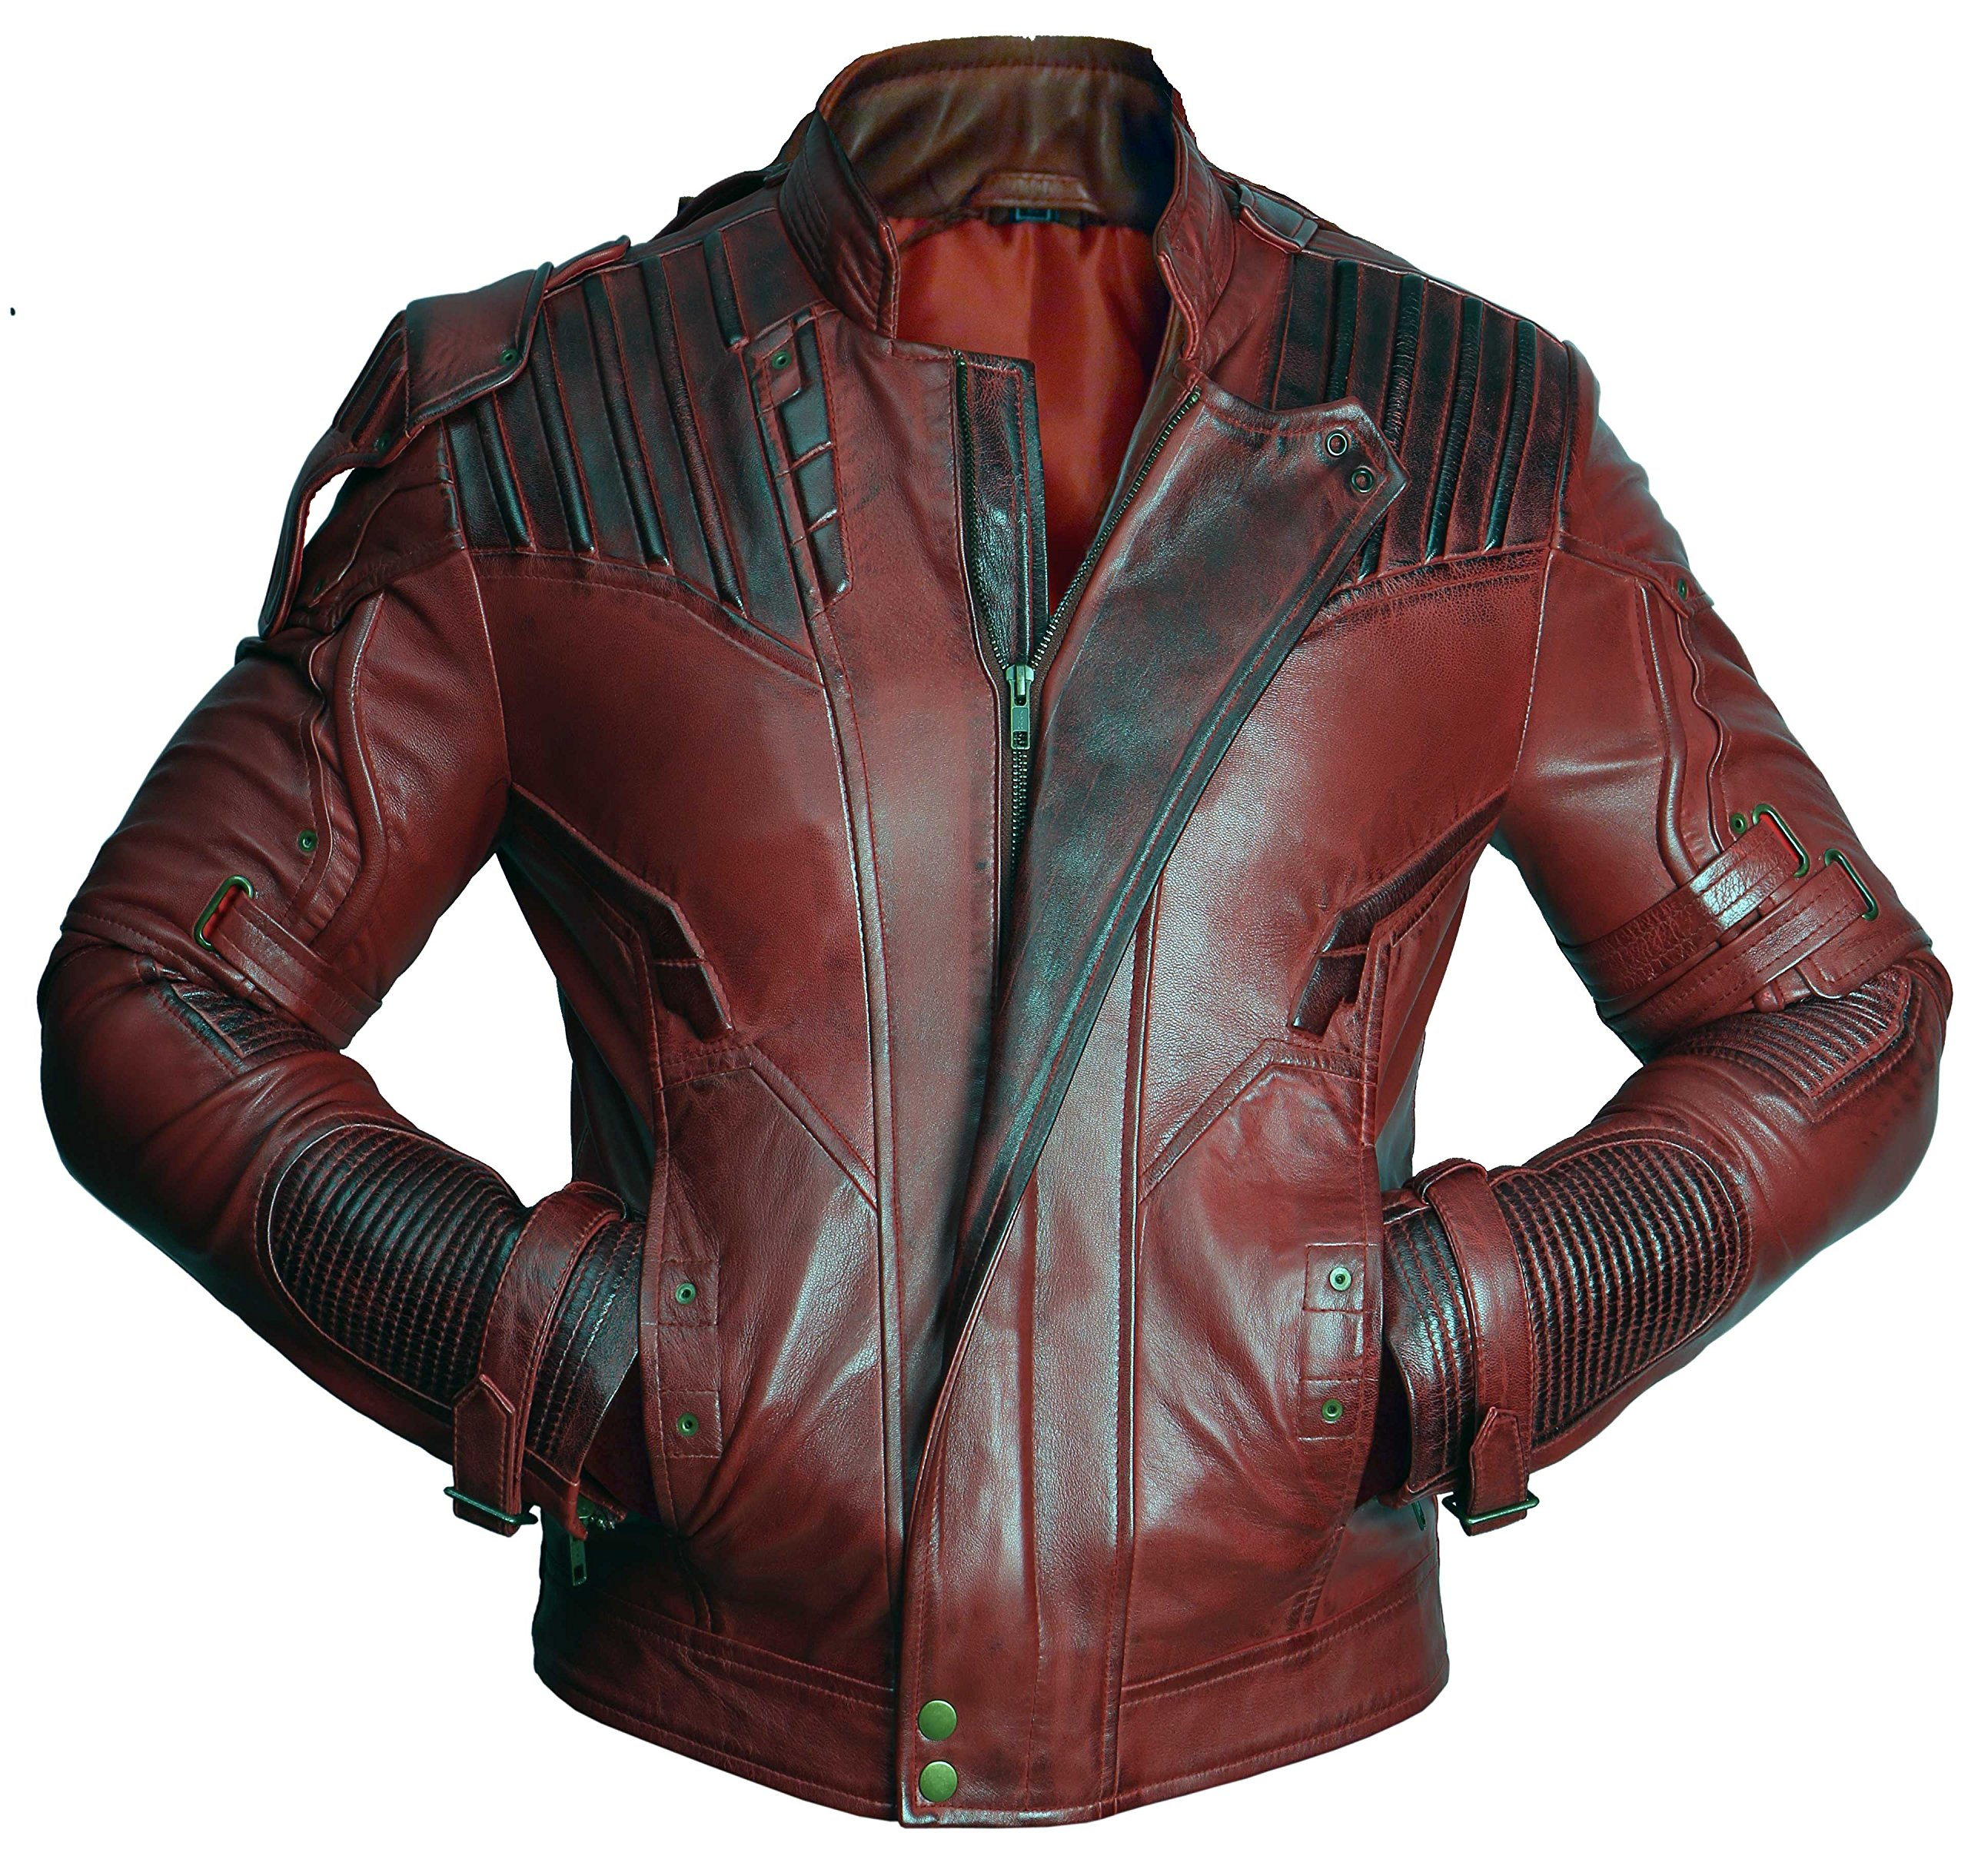 Premium Leather Garments Star Lord Guardians Of Galaxy 2 Chris Pratt Real Leather Jacket (S - Suitable For Chest Size 37'') by Premium Leather Garments